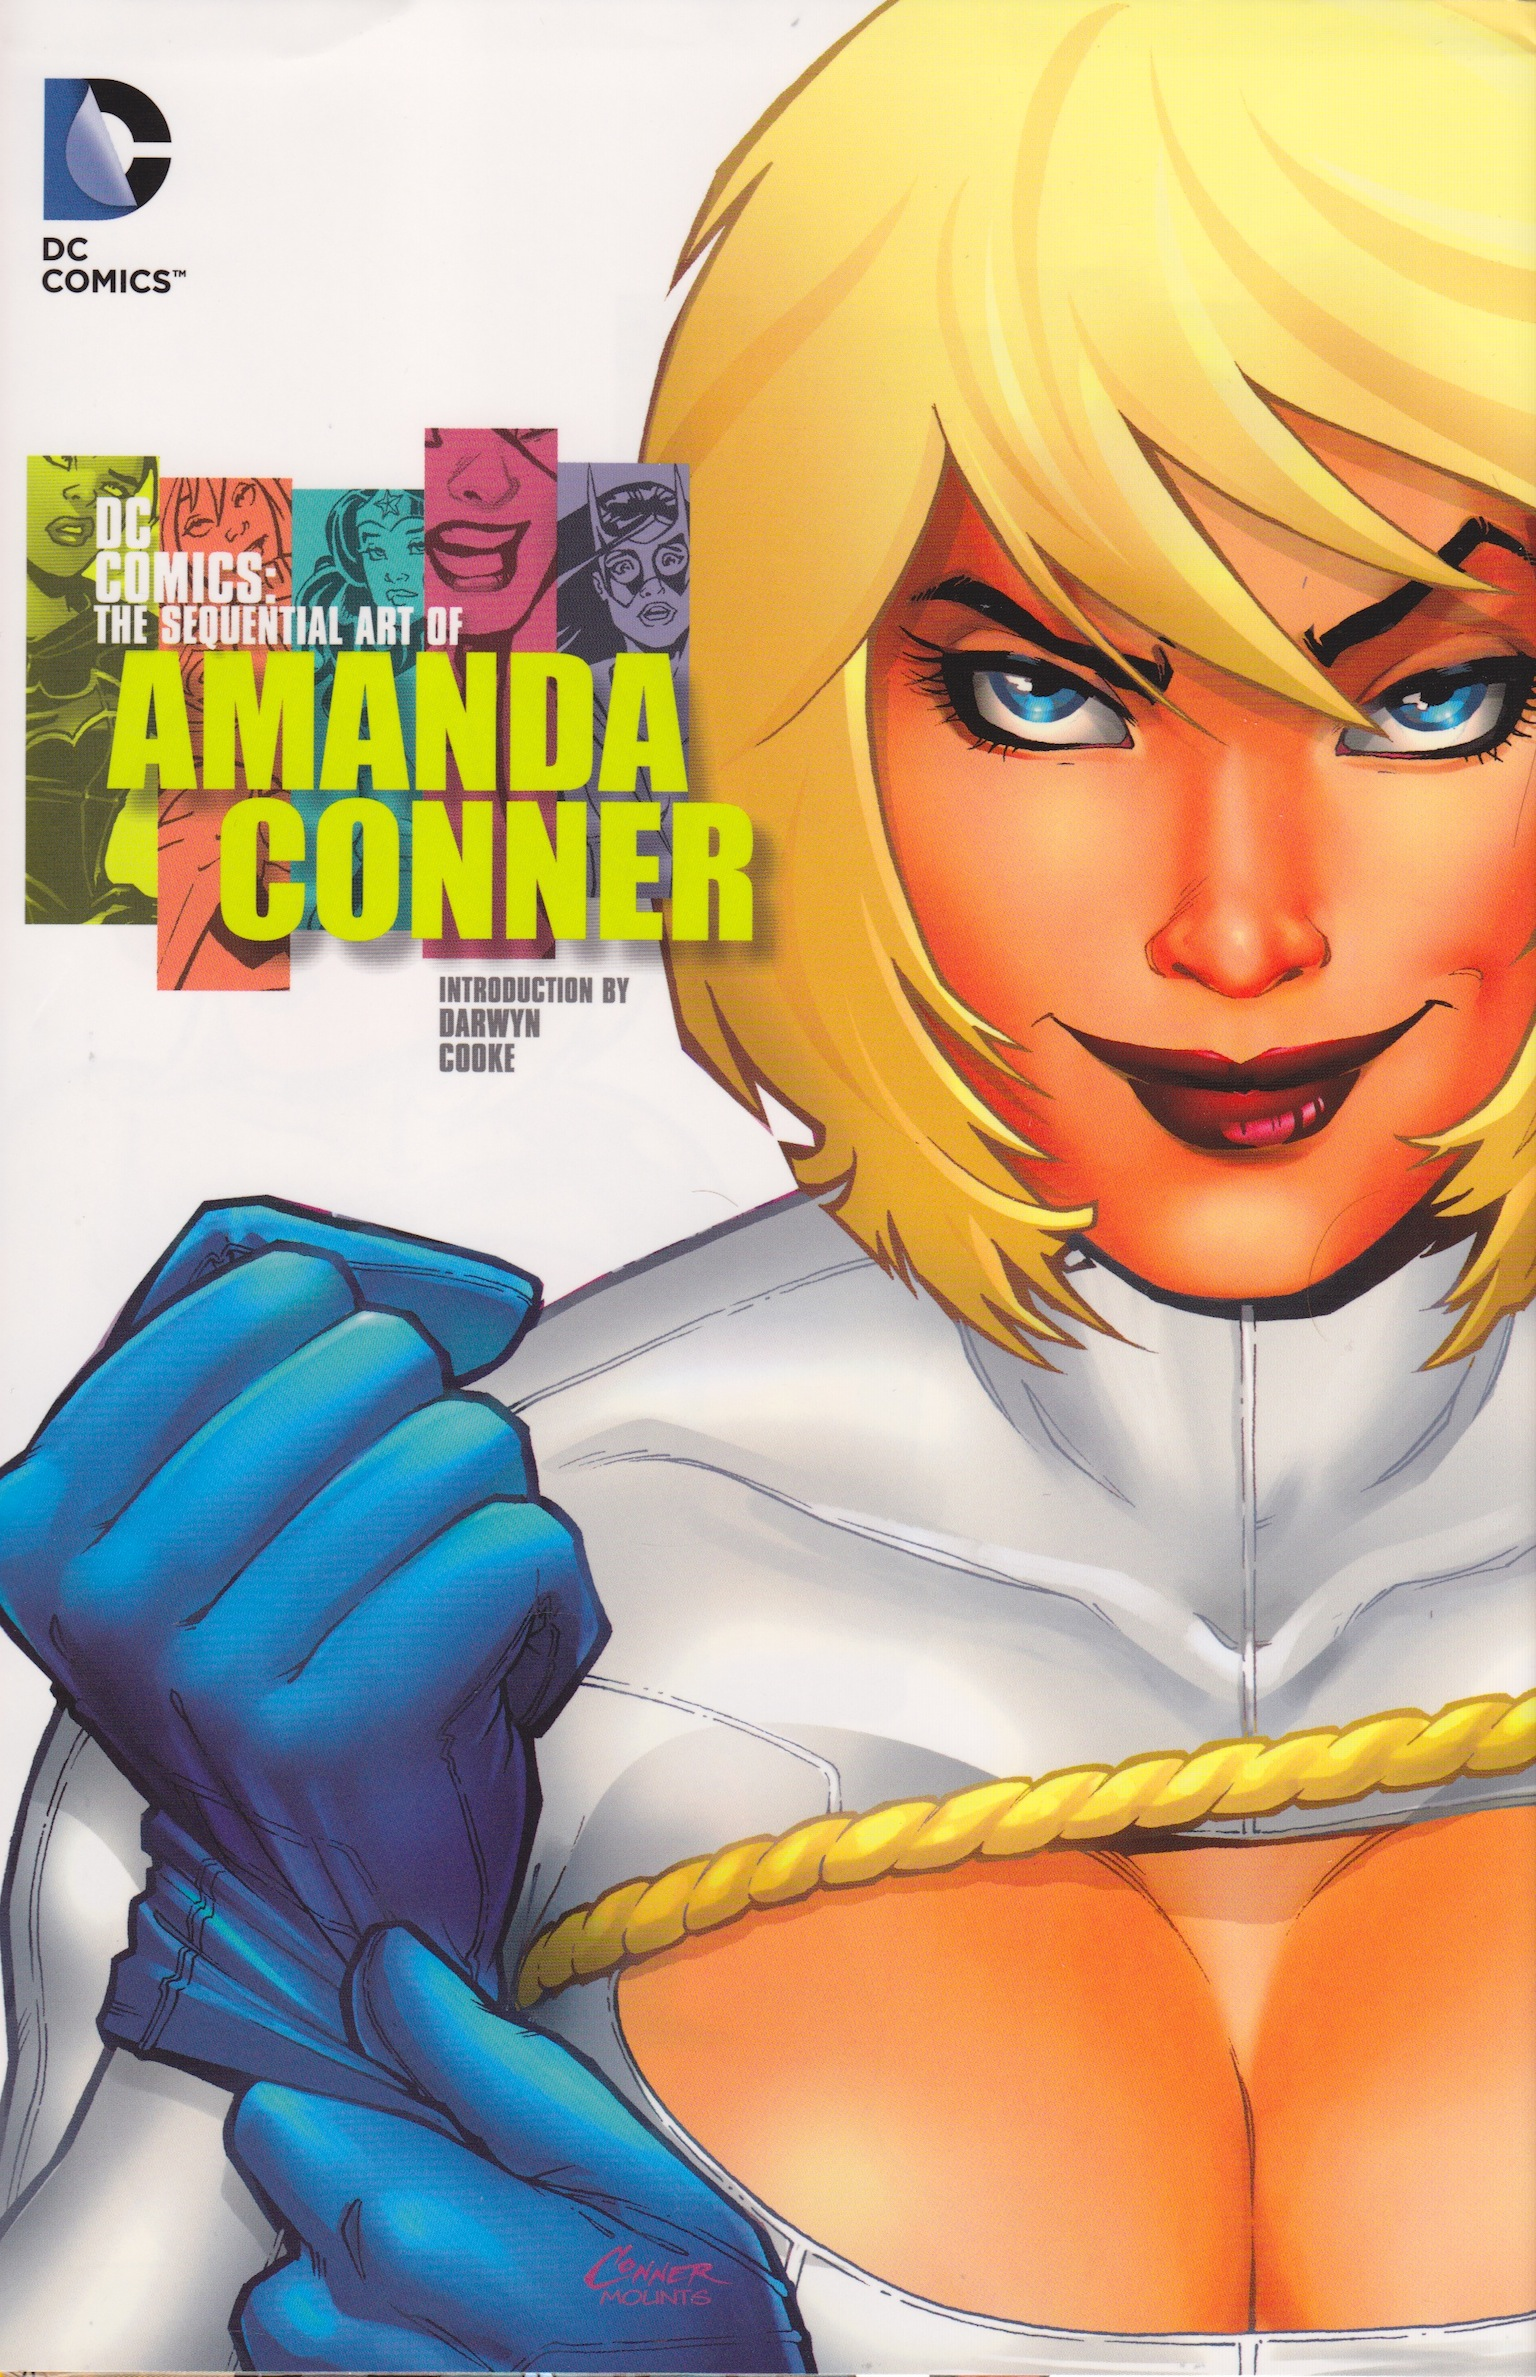 The Sequential Art of Amanda Conner cover